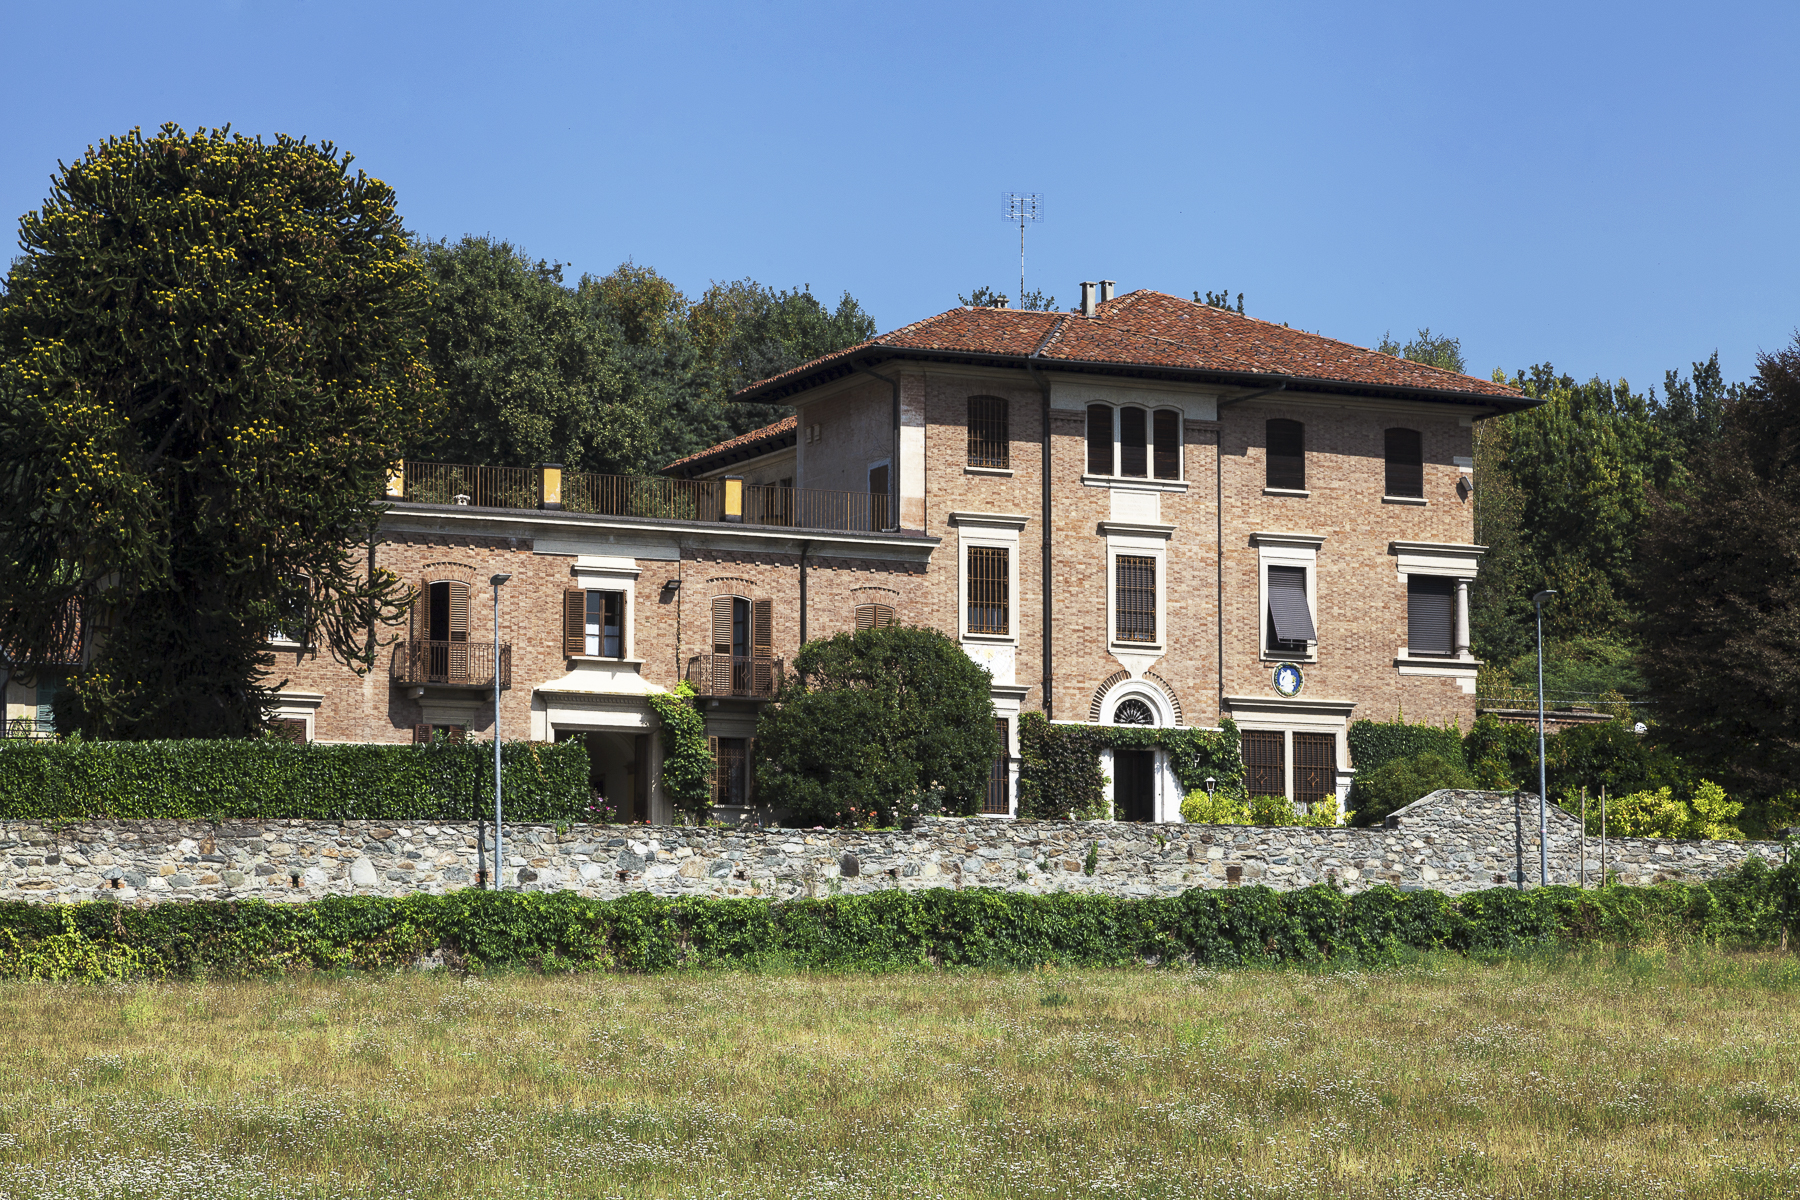 Maison unifamiliale pour l Vente à Unique Villa with swimming pool Piazza Rampone Biella, Biella 13883 Italie